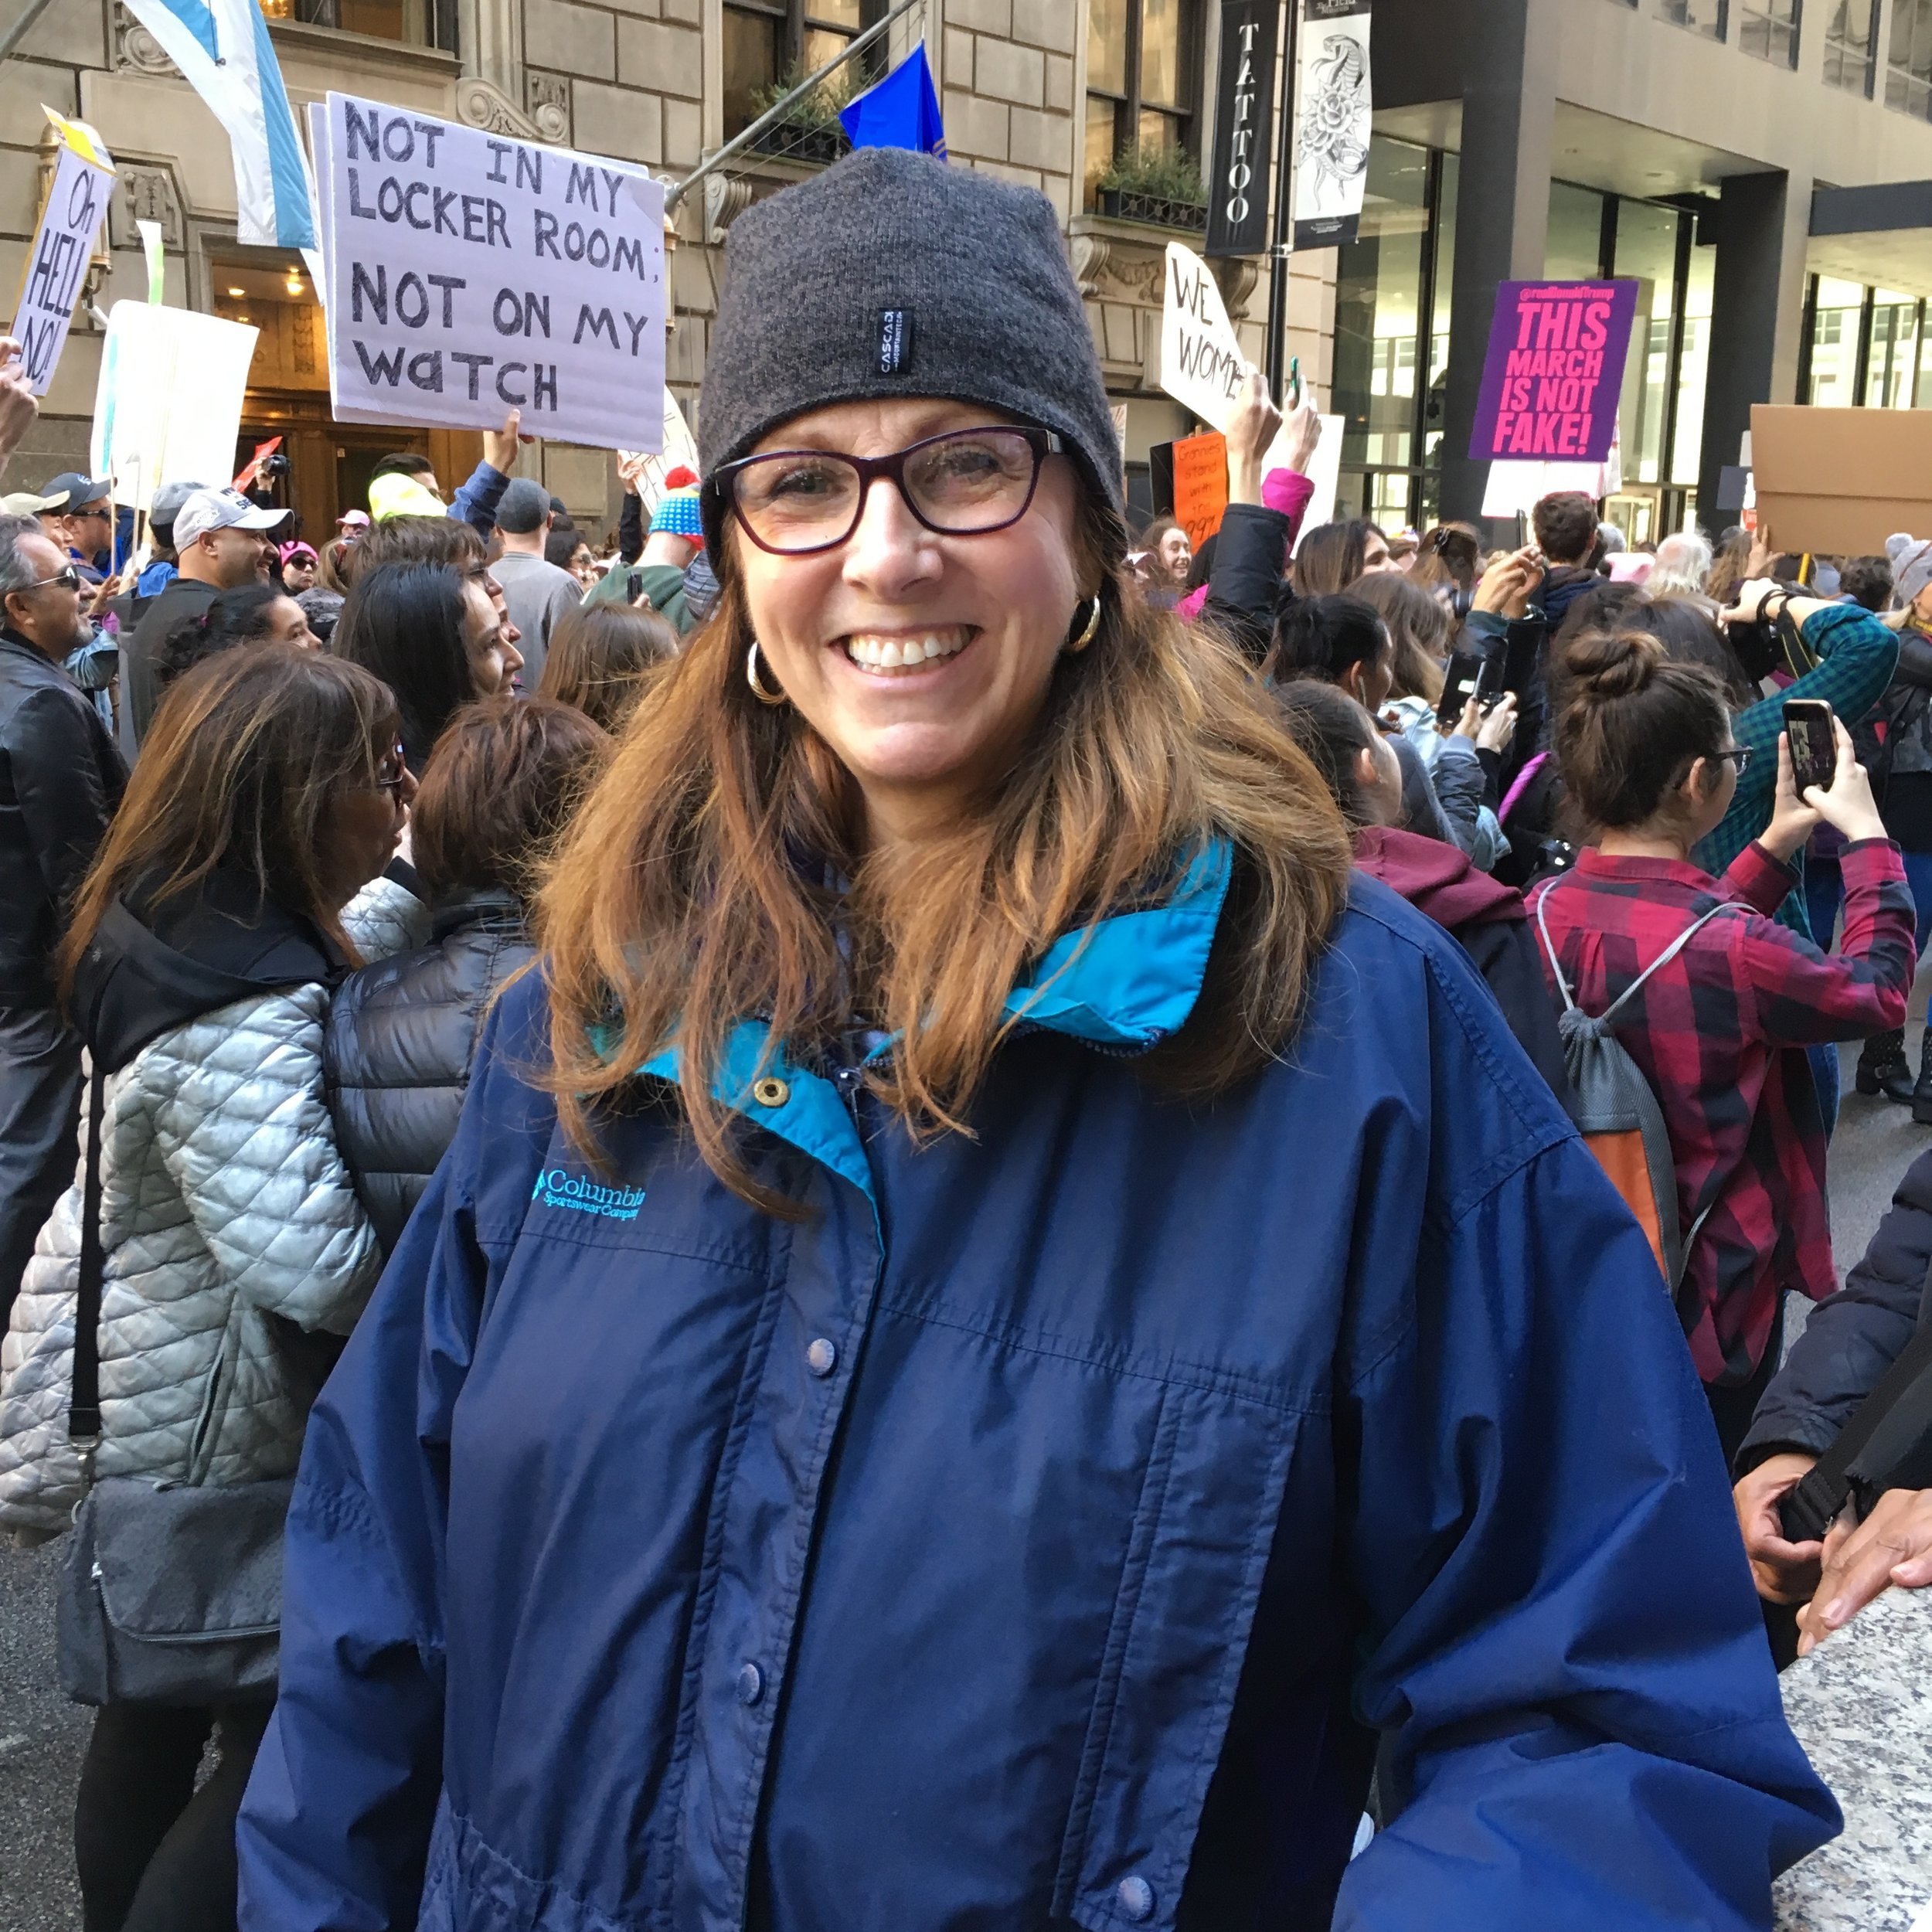 Dianne Women's March Chicago (1).JPG